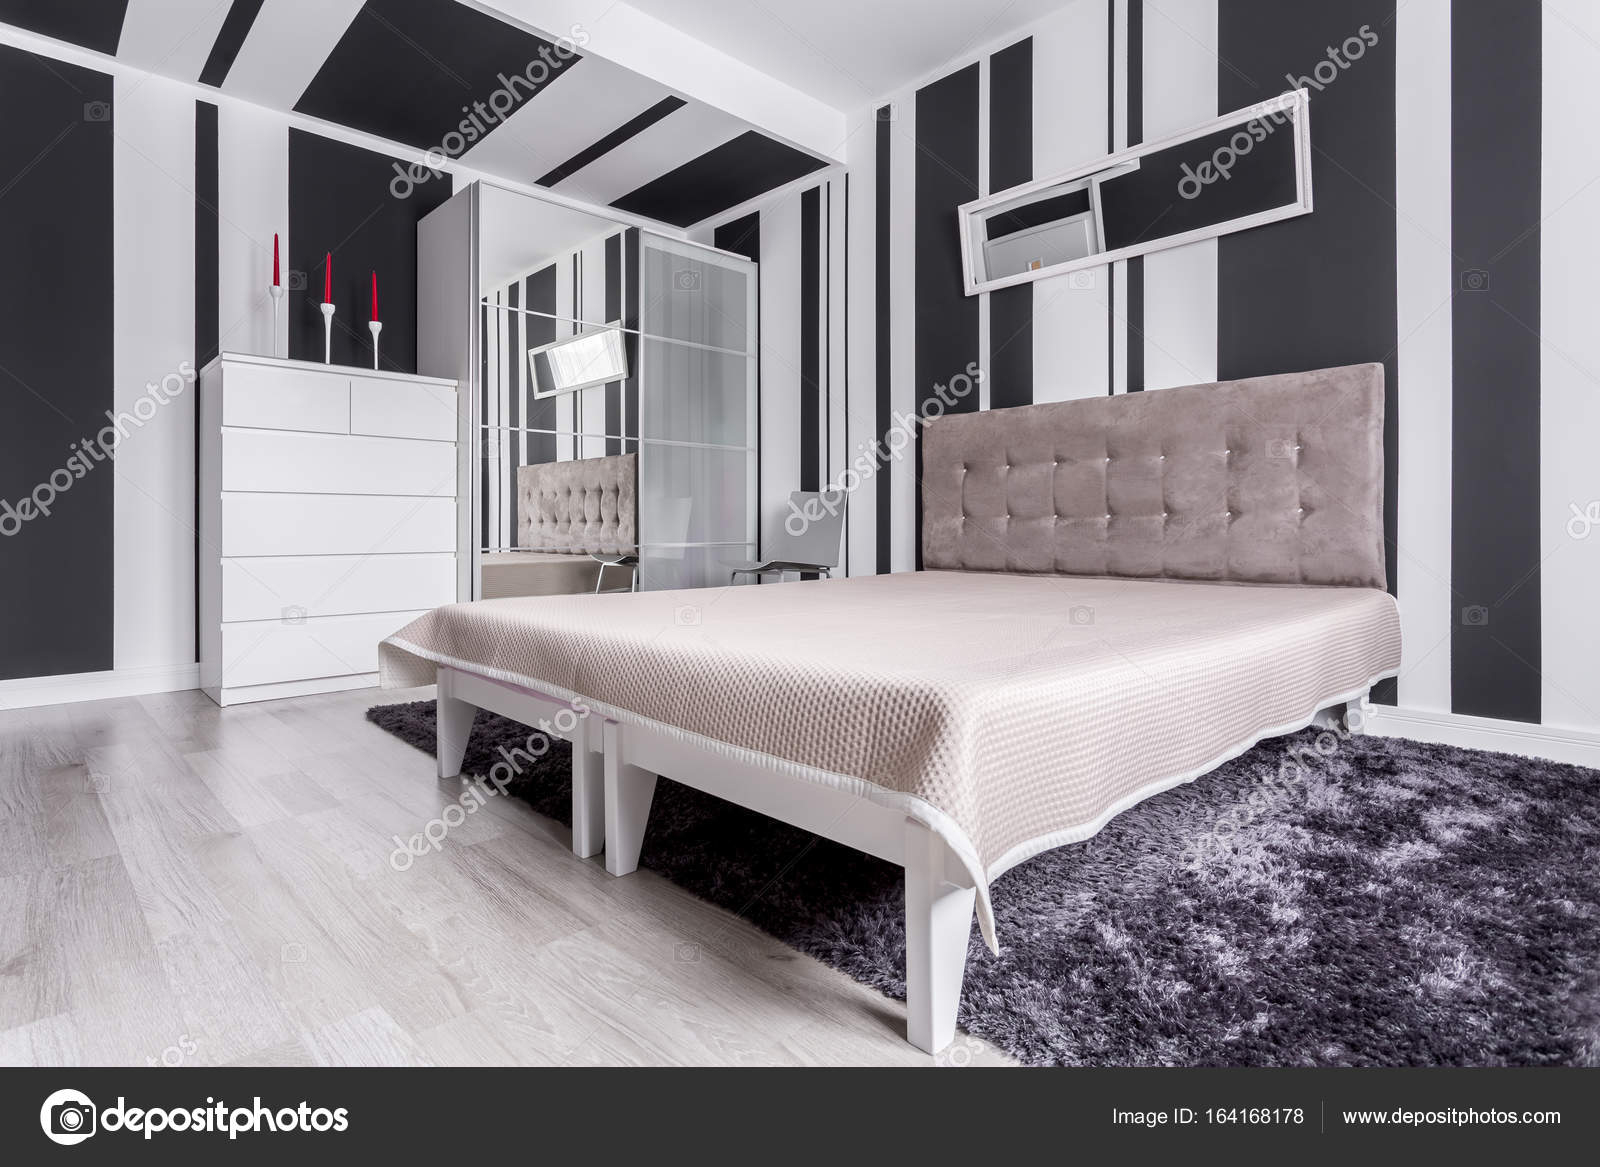 Gestreept Behang Slaapkamer Slaapkamer In Trendy Appartement Stockfoto Photographee Eu